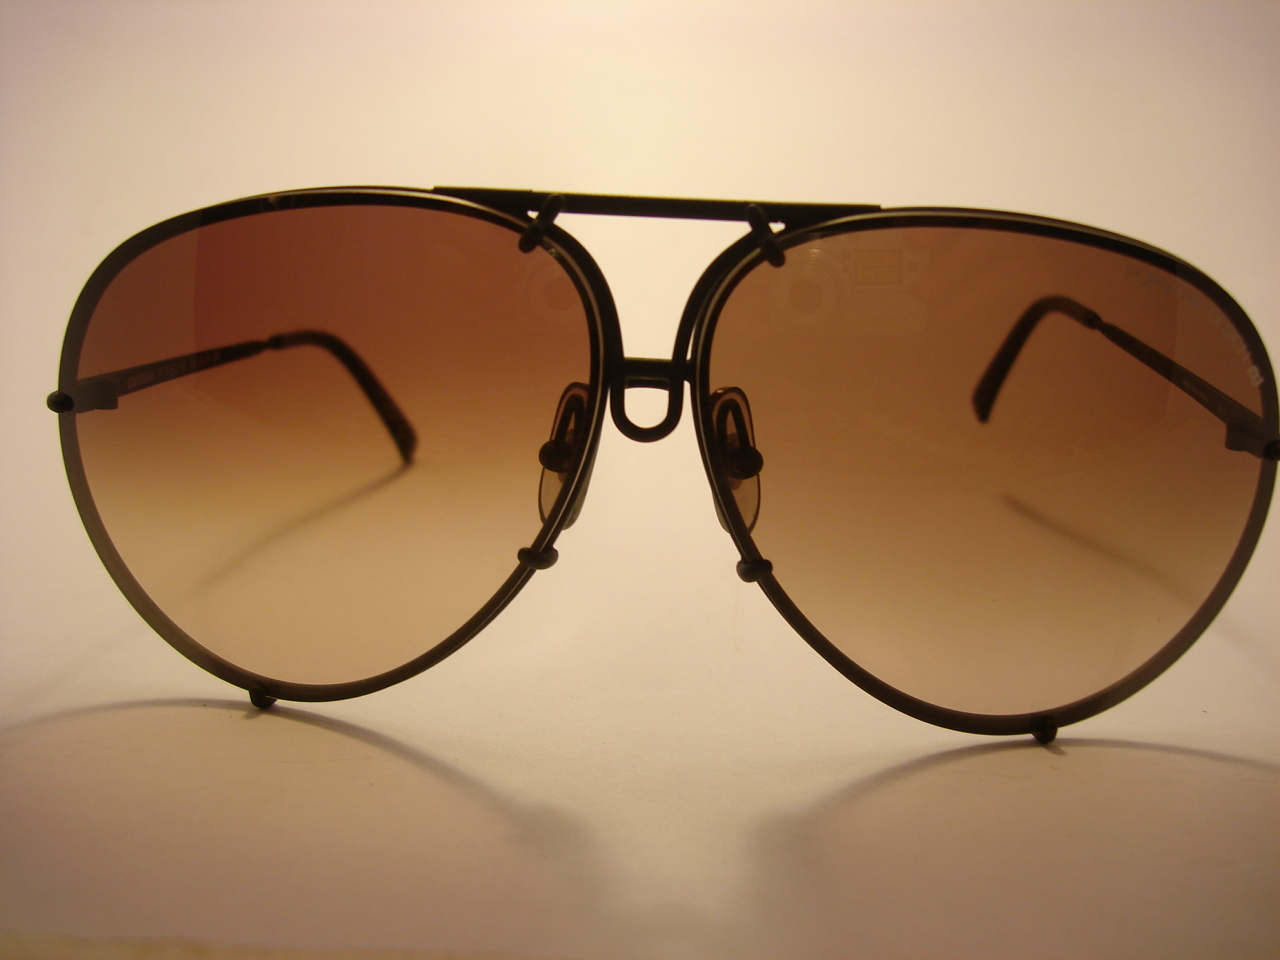 Theothersideofthepillow Vintage Porsche Design By Carrera 5621 Black Aviator Sunglasses Made In